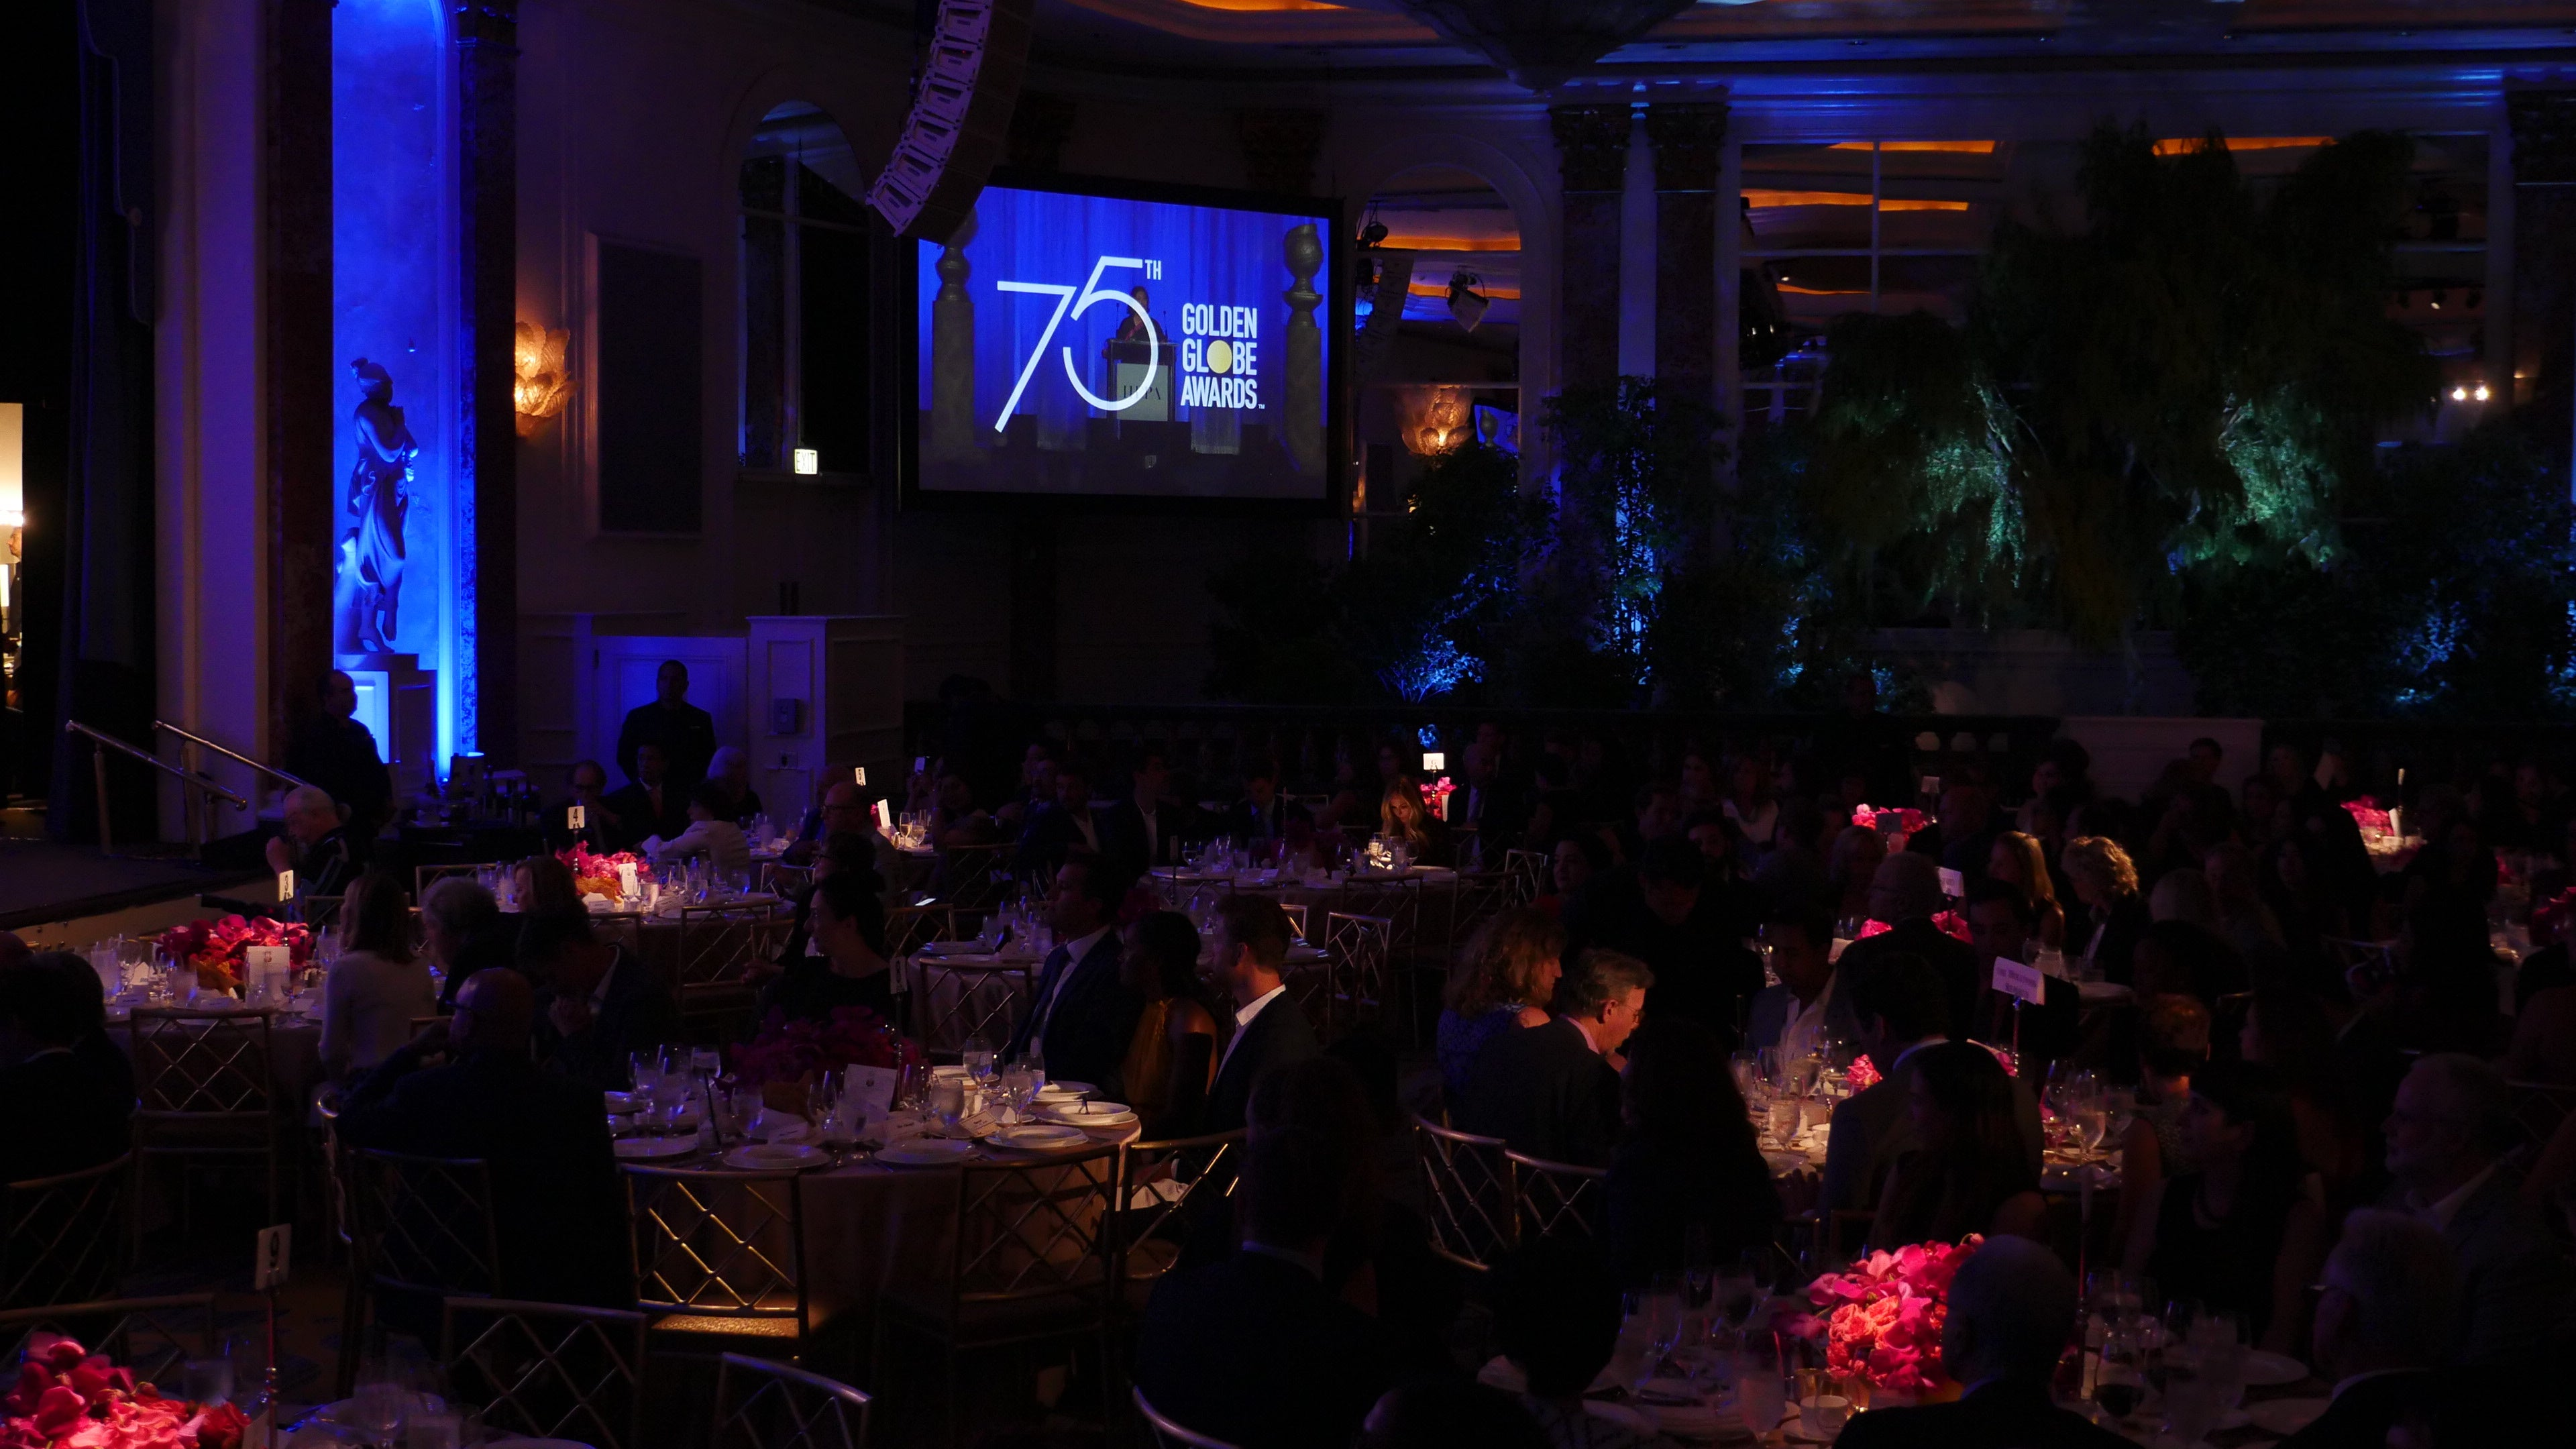 75th anniverasy Llogo unveiled at the HFPA Annual Grants Banquet